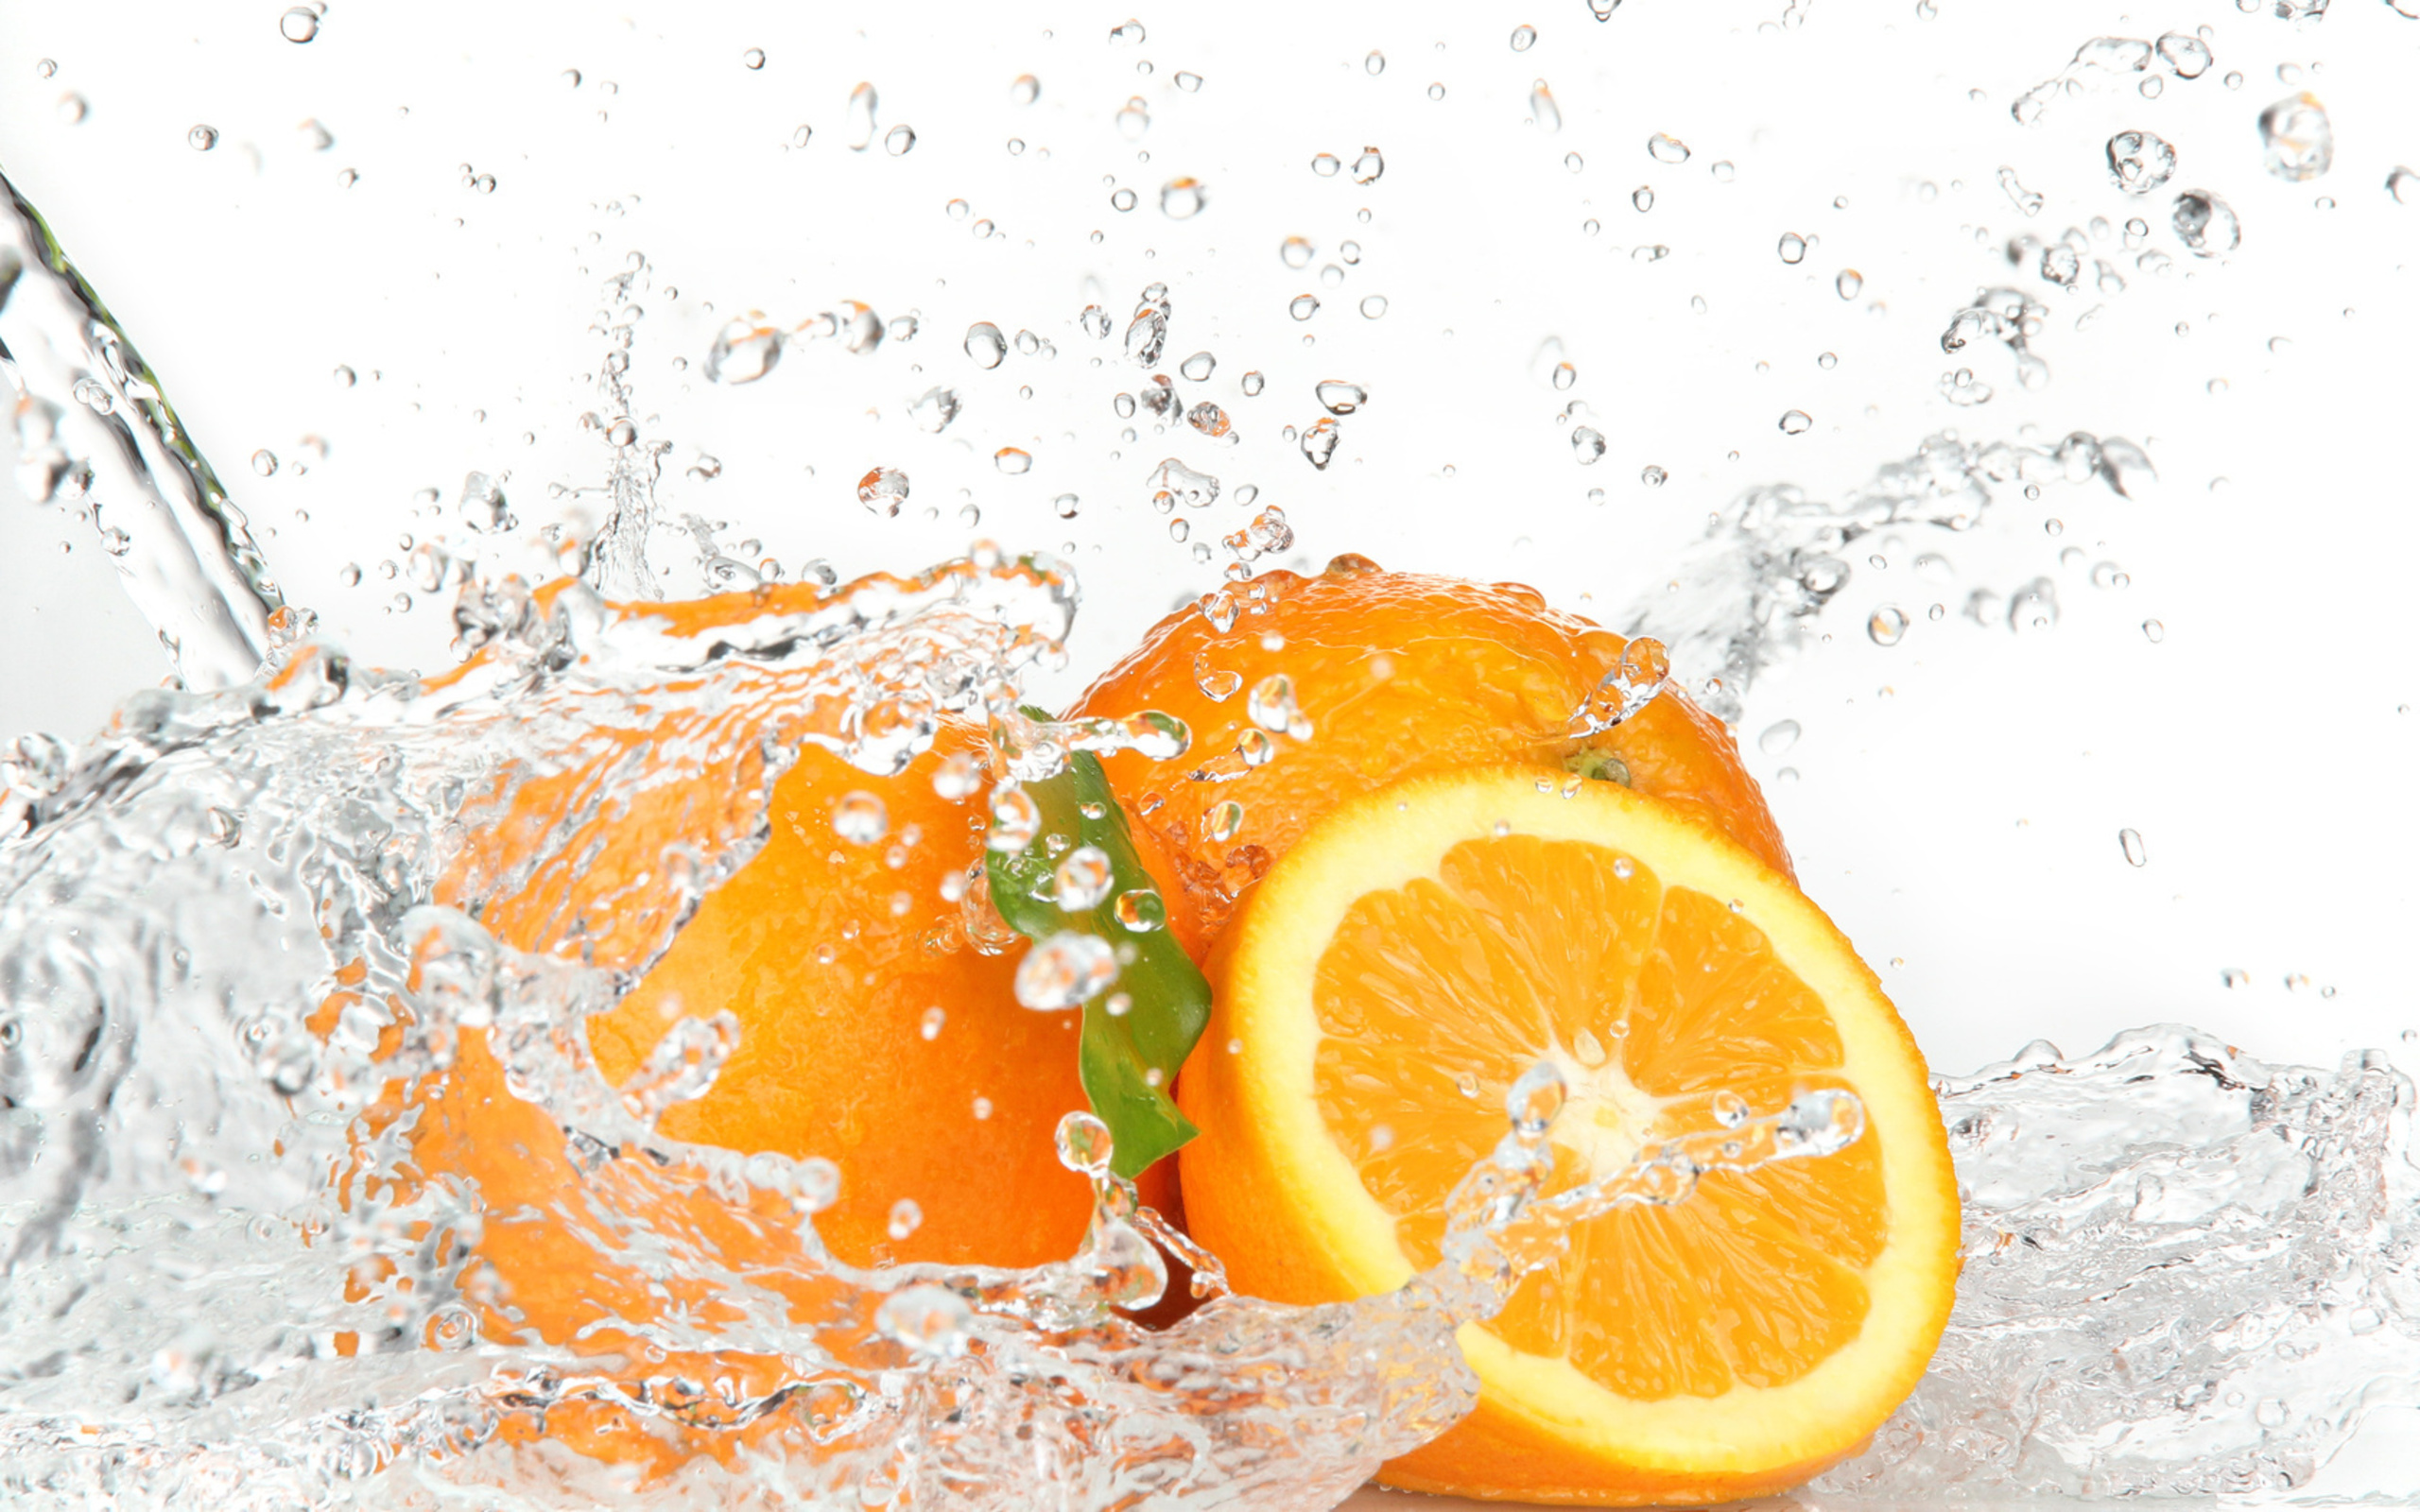 Orange Fruits And Splashing Water Wide Wallpaper #70560 - Resolution 2560x1600 px